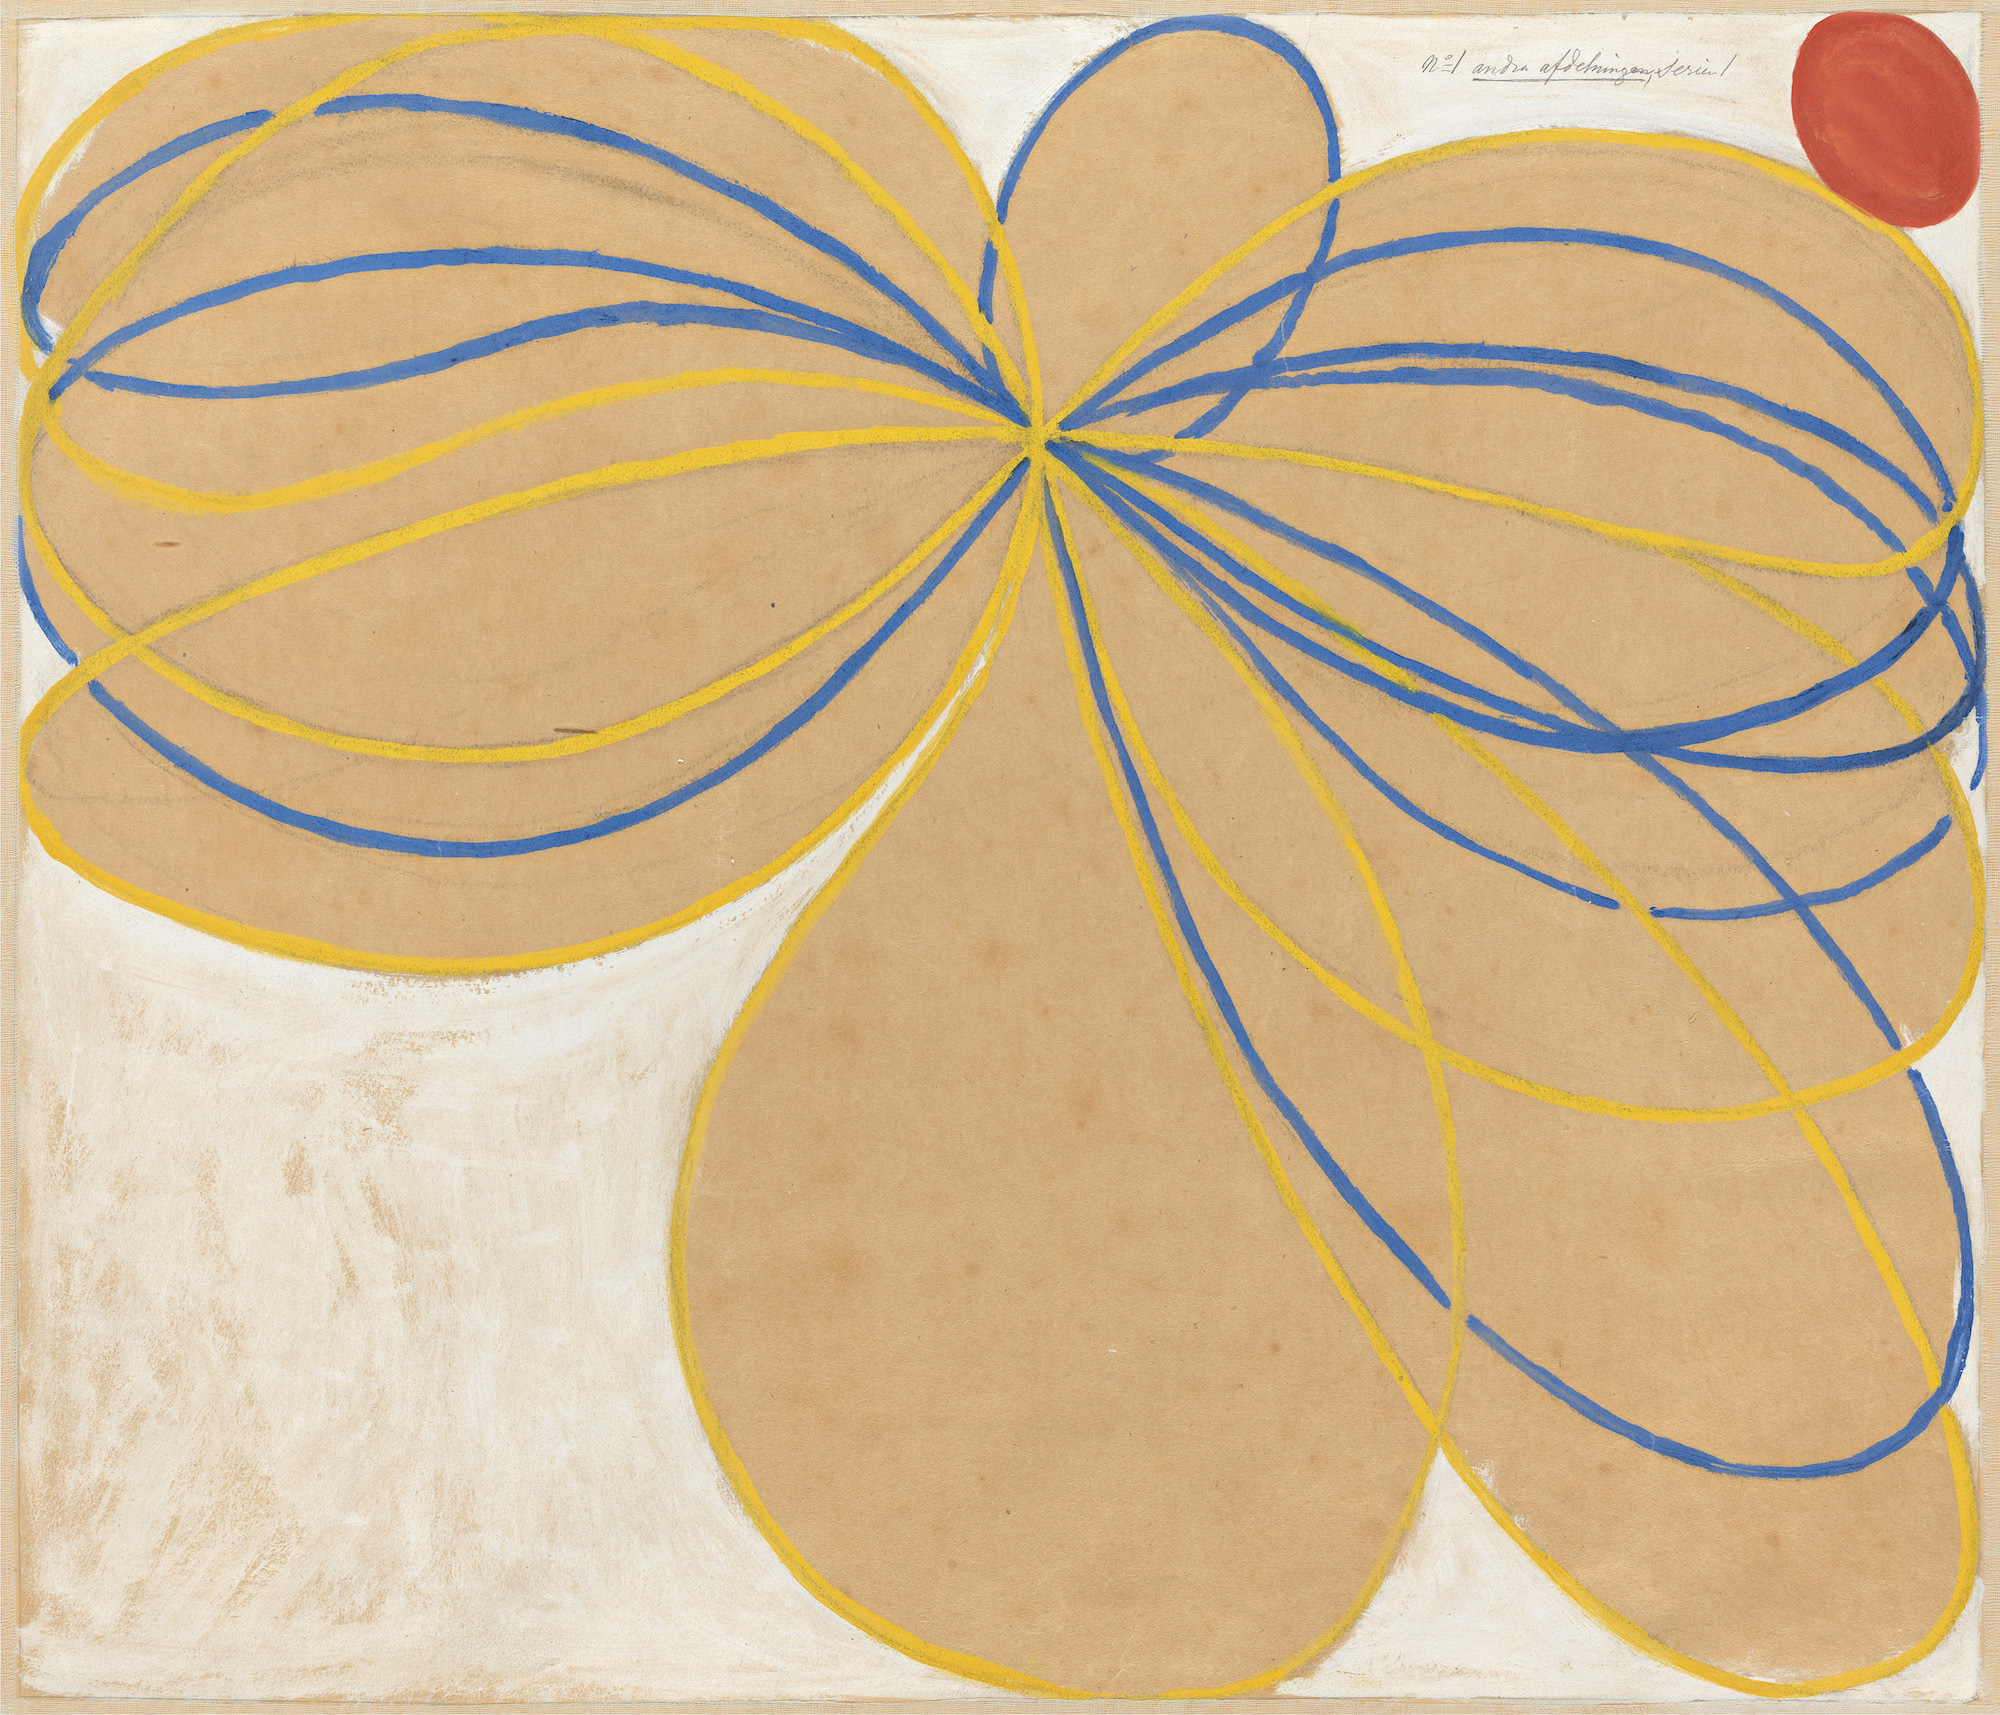 Hilma af Klint Group V, The Seven-Pointed Star, No. 1n (Grupp V, Sjustjärnan, nr 1), 1908 from The WUS/Seven-Pointed Star Series (Serie WUS/Sjustjärnan). Courtesy The Hilma af Klint Foundation, Stockholm